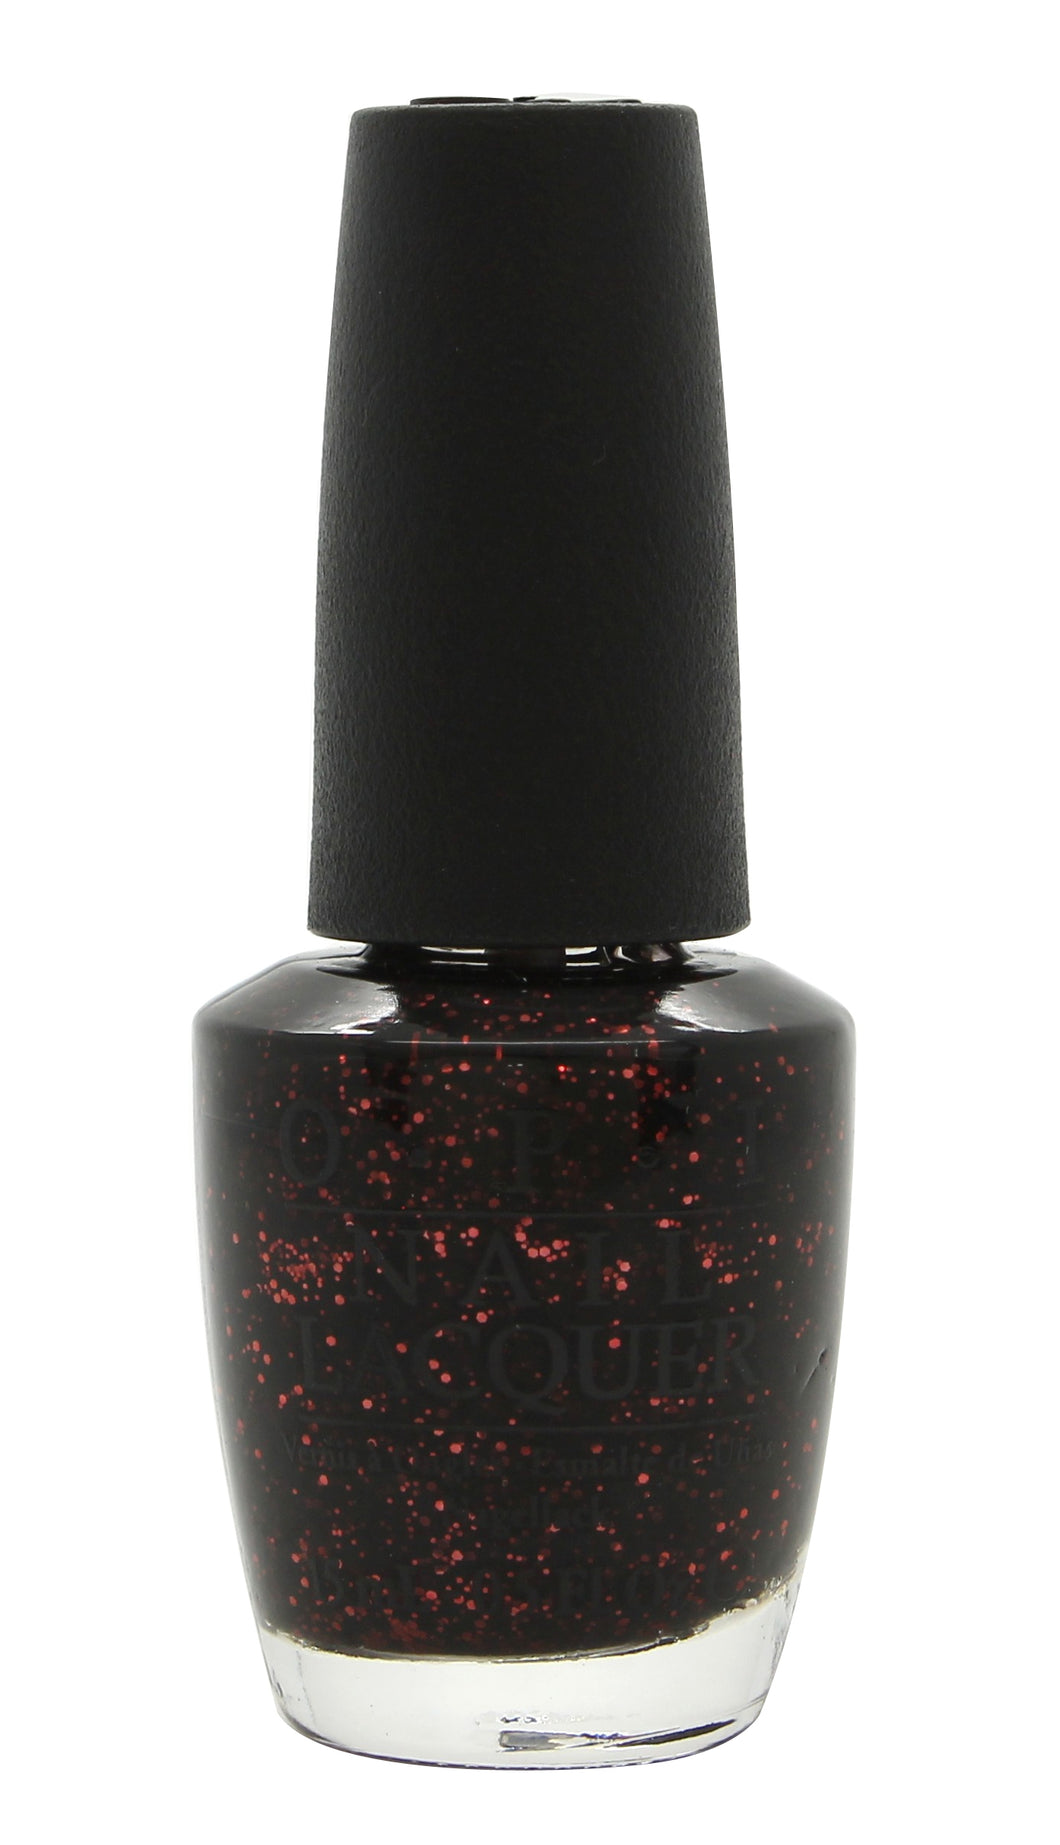 OPI Coca Cola Nail Polish 15ml - Today I Accomplished Zero